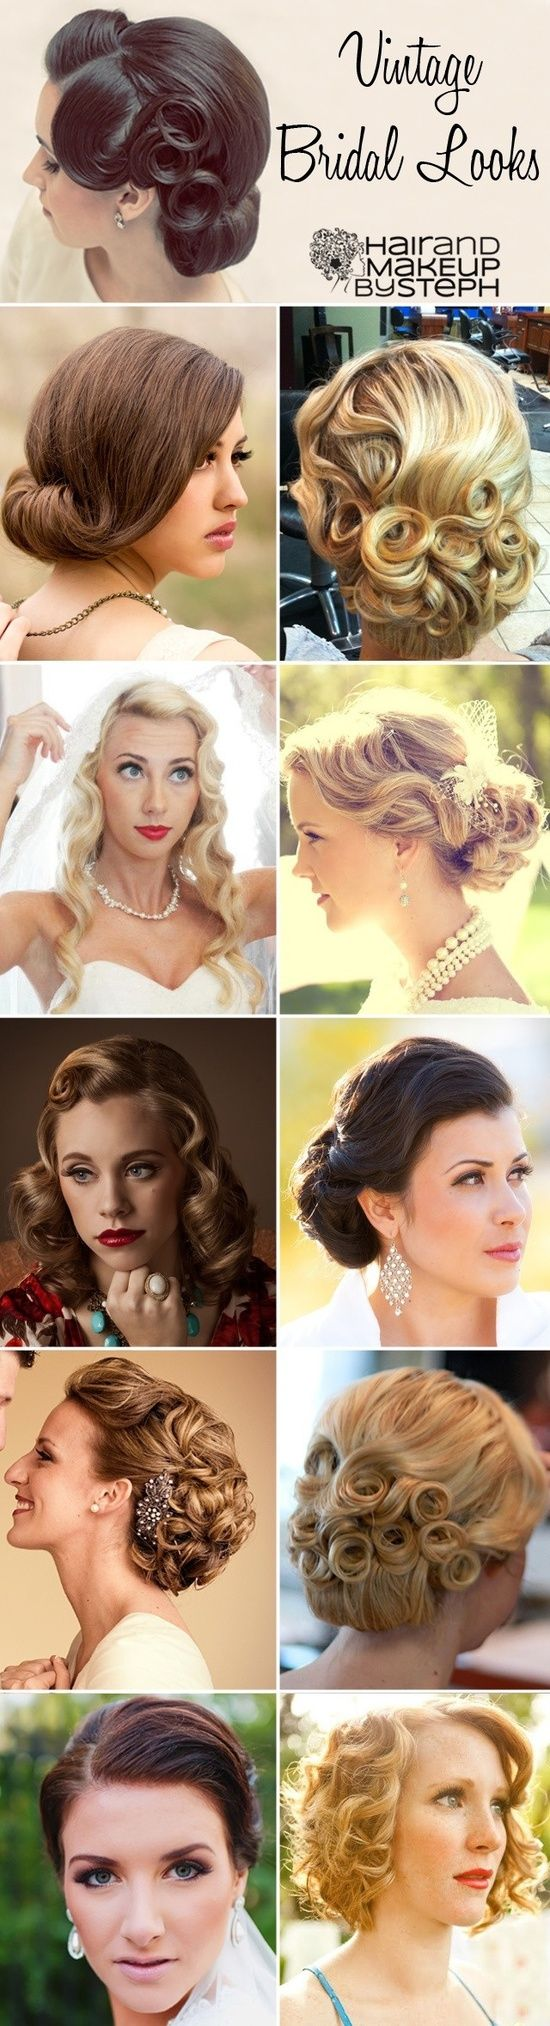 Vintage Inspired Wedding Hair Styles - I'm in complete LOVE with the first two. I think these will work for my girls (if I don't elope)